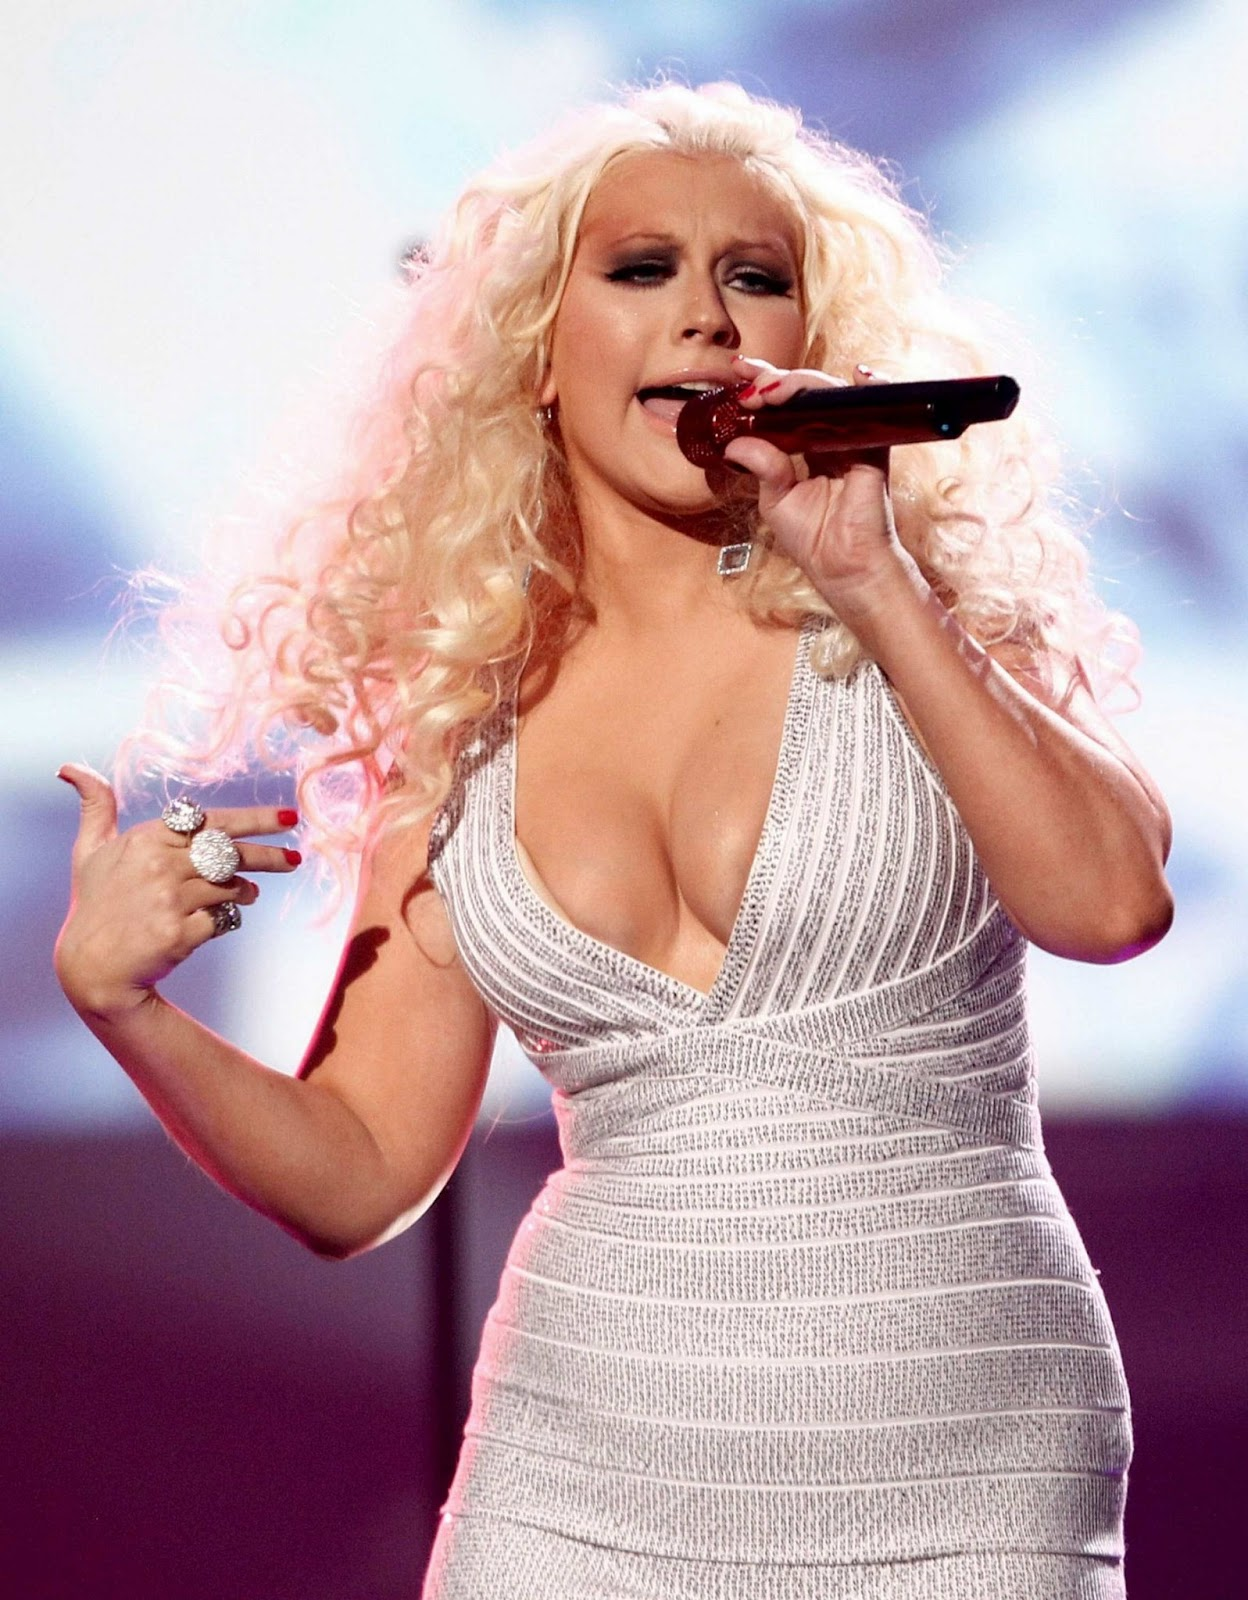 big Christina cleavage aguilera